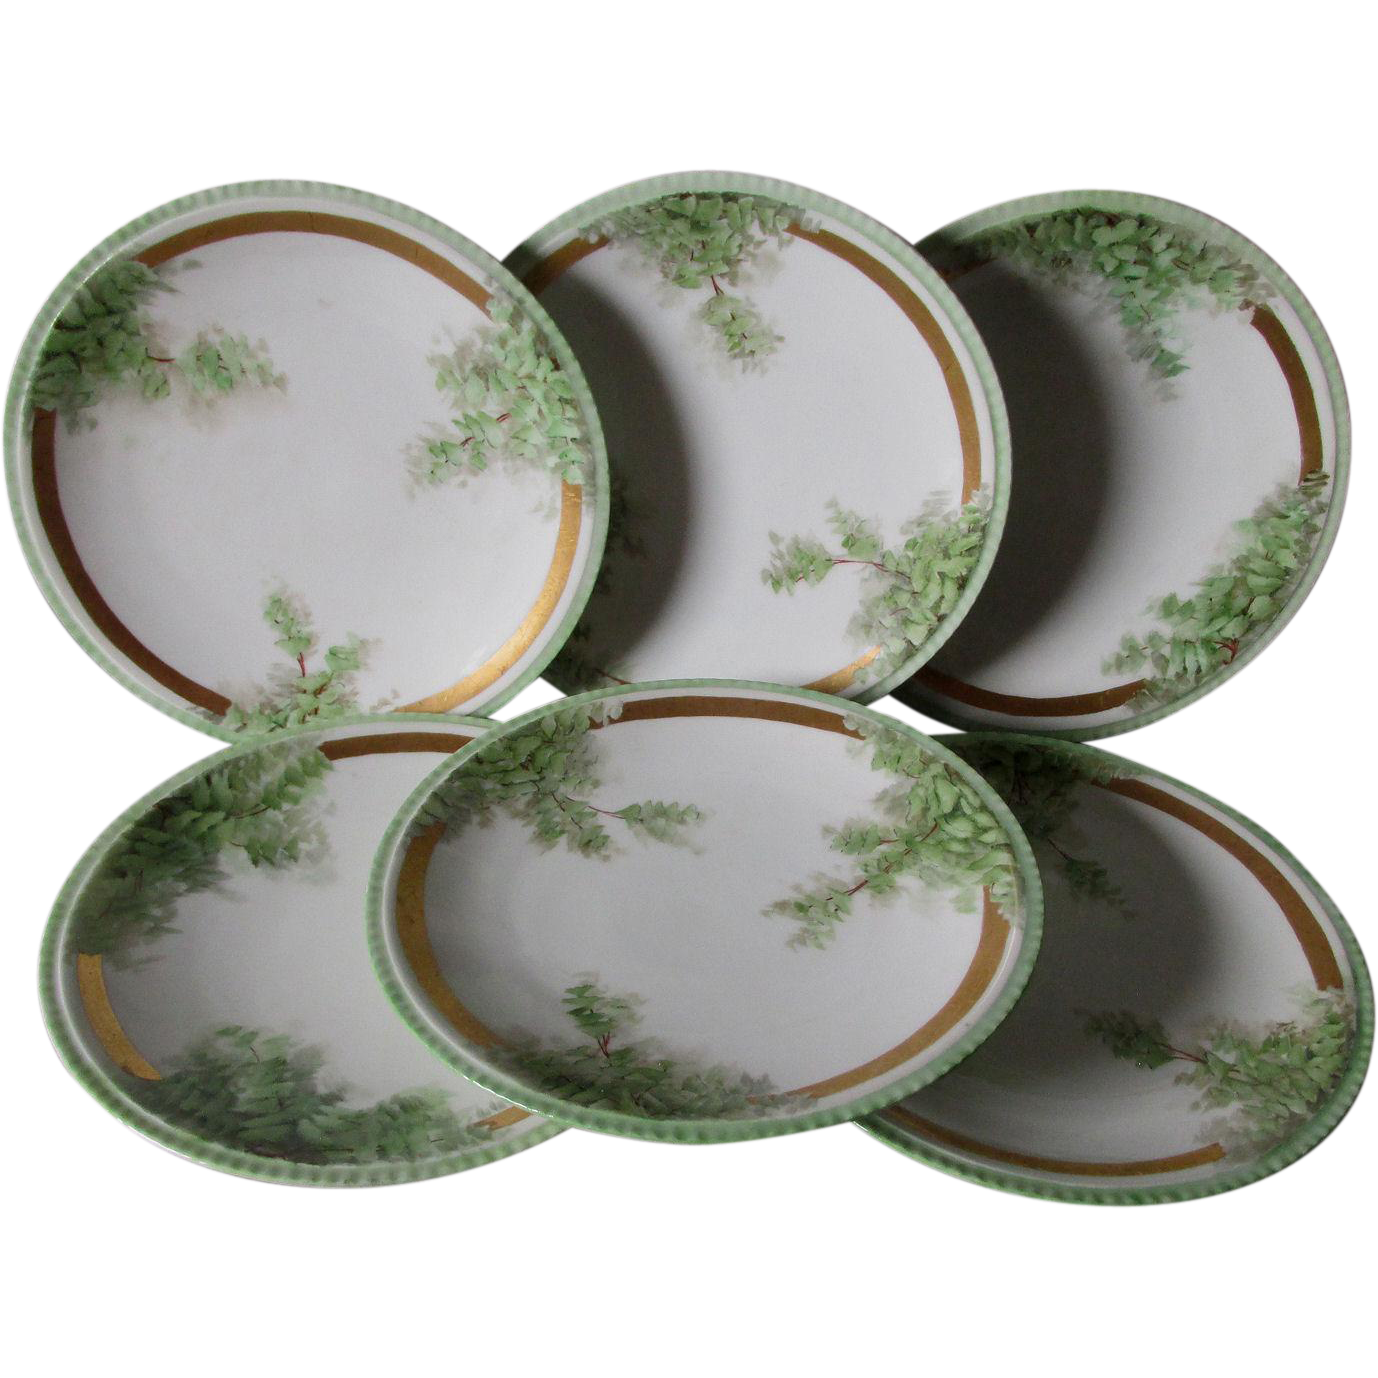 Lovely Set of 6 French Limoges Plates with Ivy, Ginkgo Leaf Motif